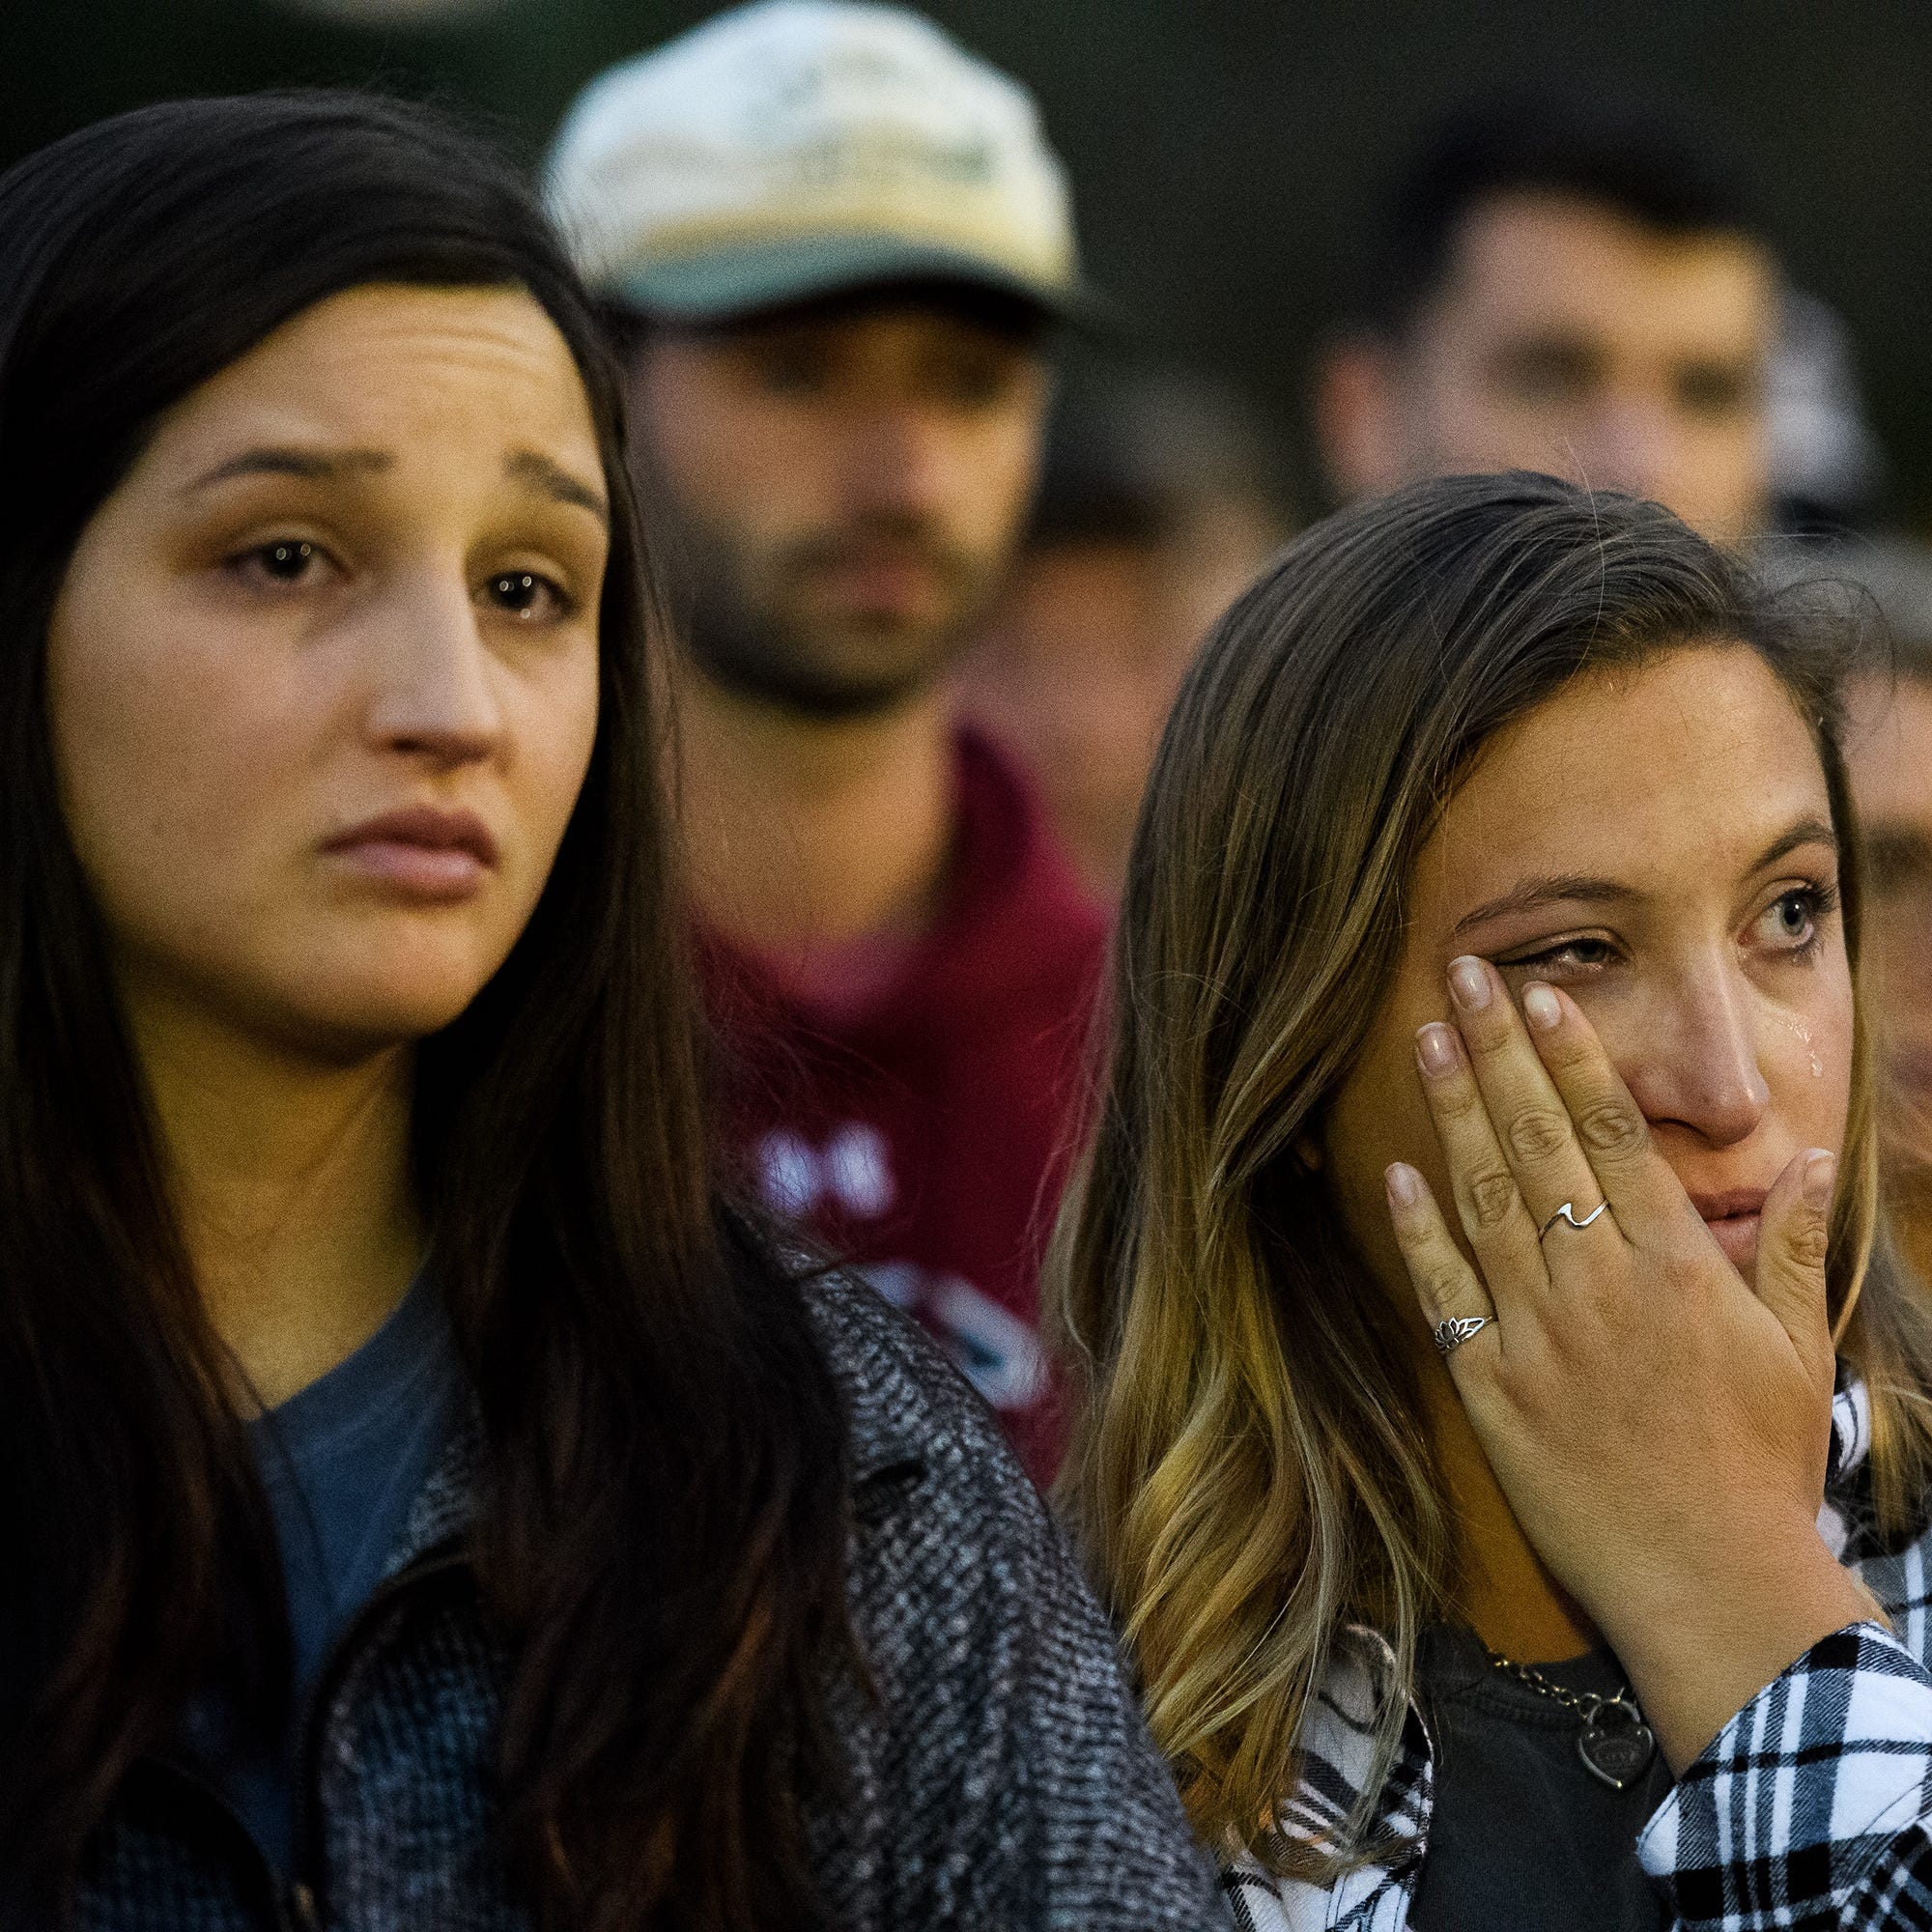 Samantha Josephson's energy will live on: Hundreds honor USC student's vibrant personality at vigil